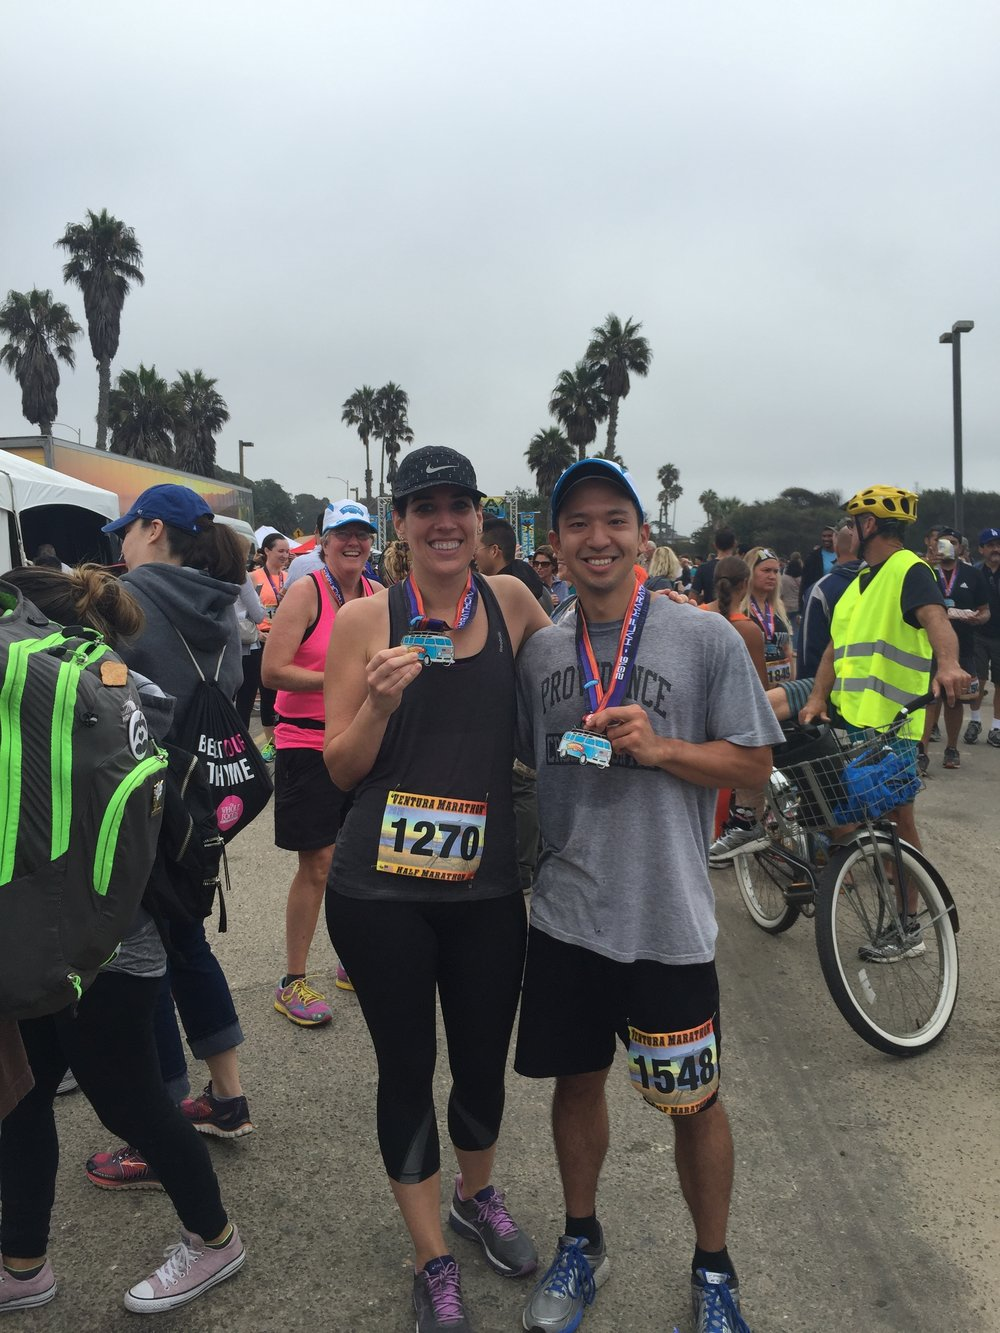 Ran a half marathon with my super friend-client Megan who's in training to PR a marathon!